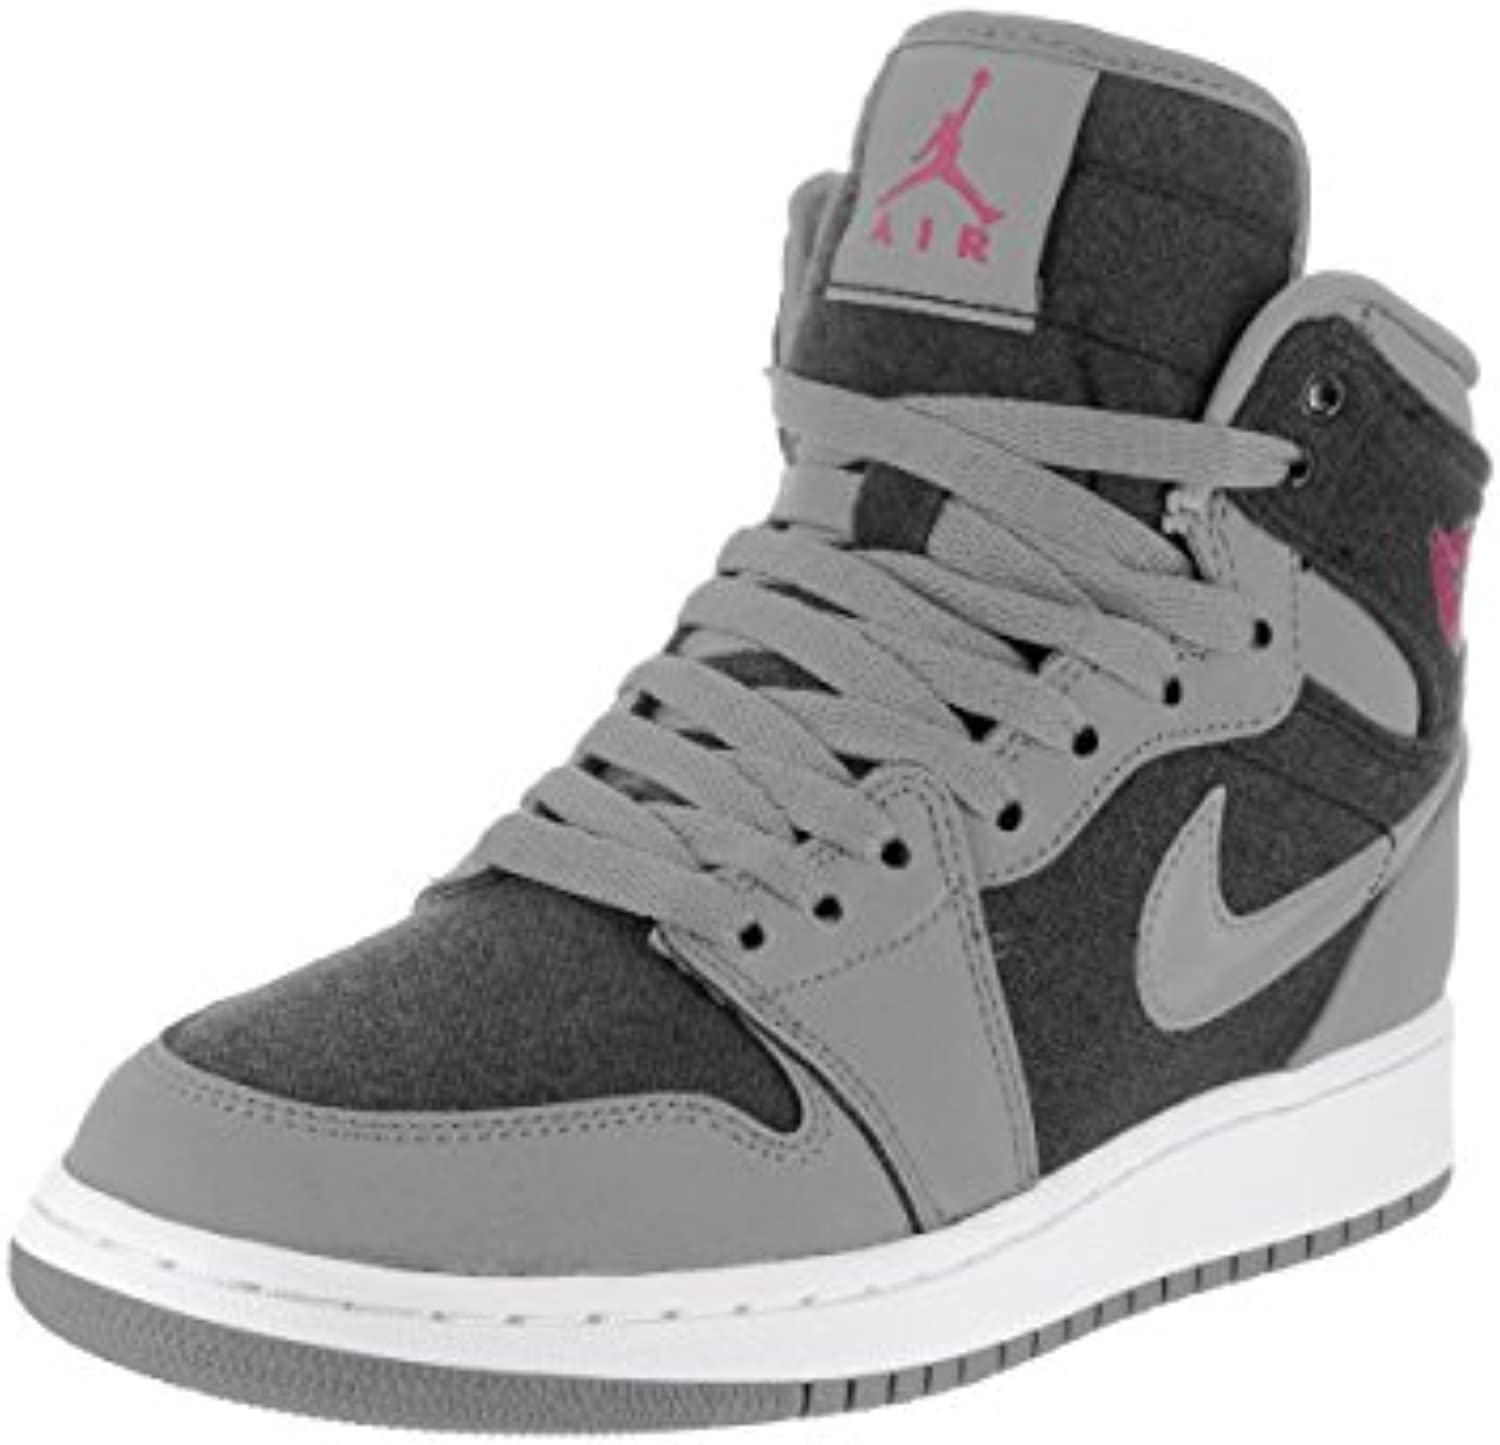 NIKE 332148-002 Trainers, Girls, Girls, Trainers, Grey (Cool Grey/Vivid Pink/Black / White), 36 1/2 EU (4|#Adult UK Girls) cea75c